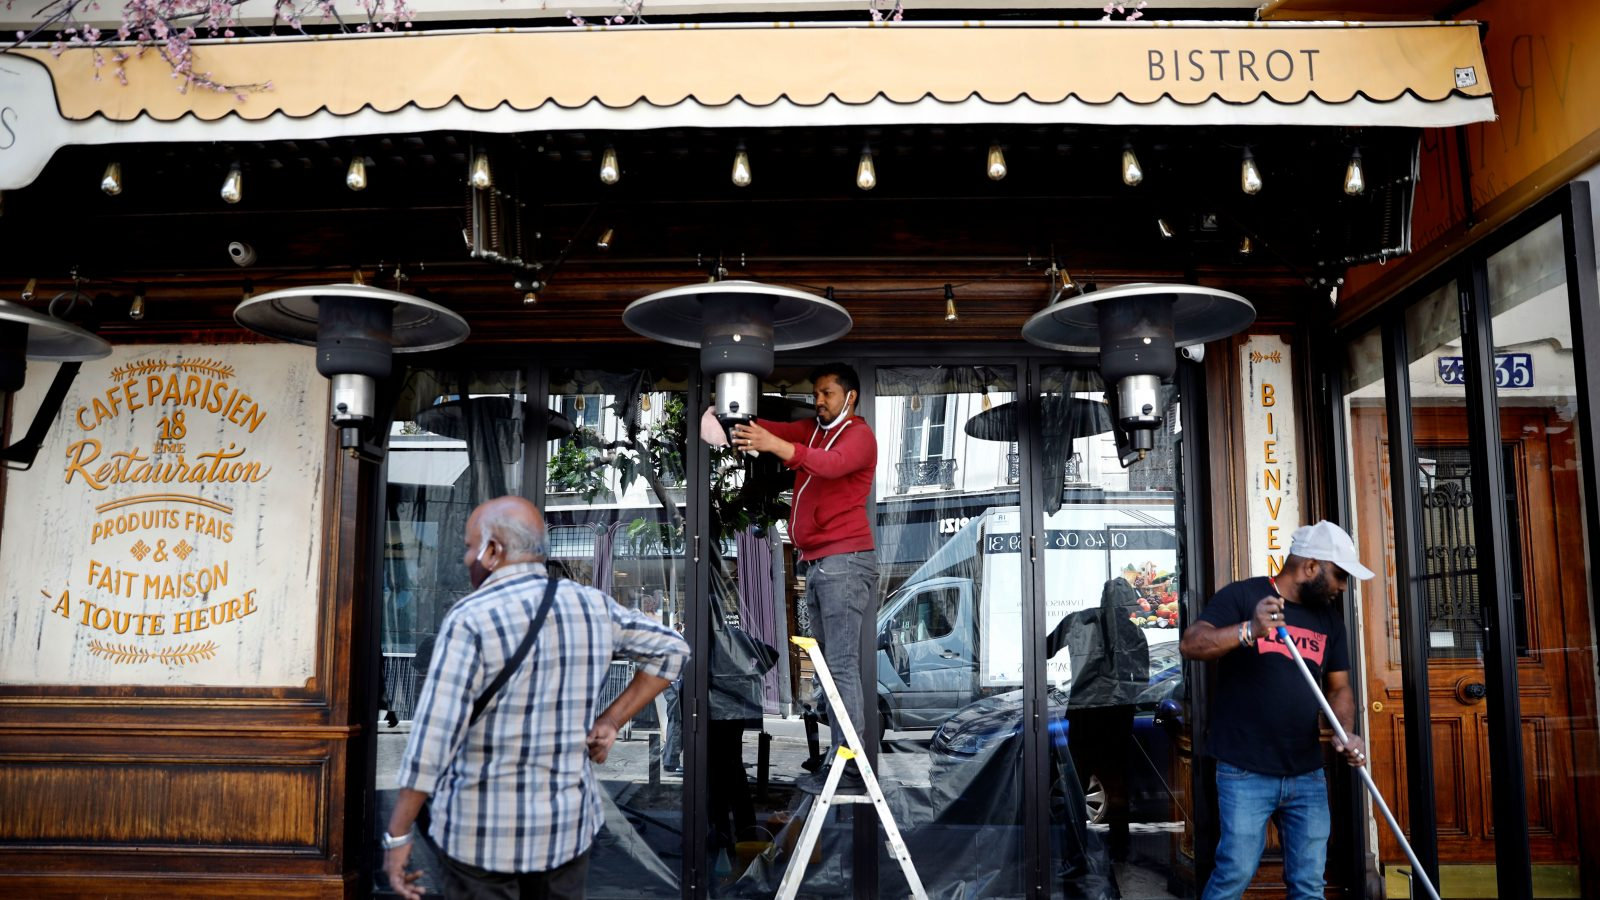 Turning off outdoor heaters at the French bistrot.